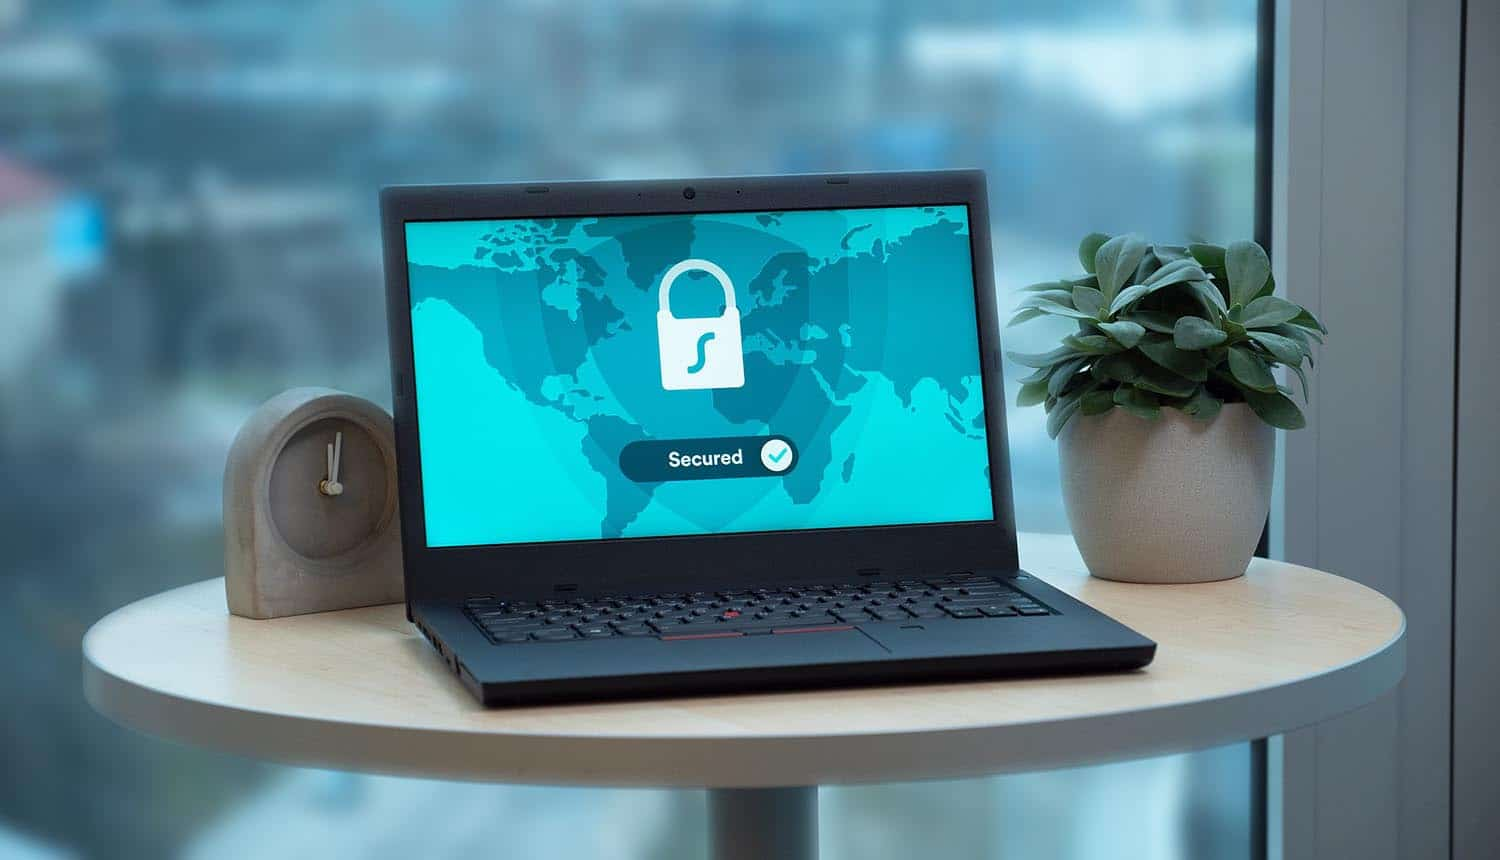 Laptop with lock icon